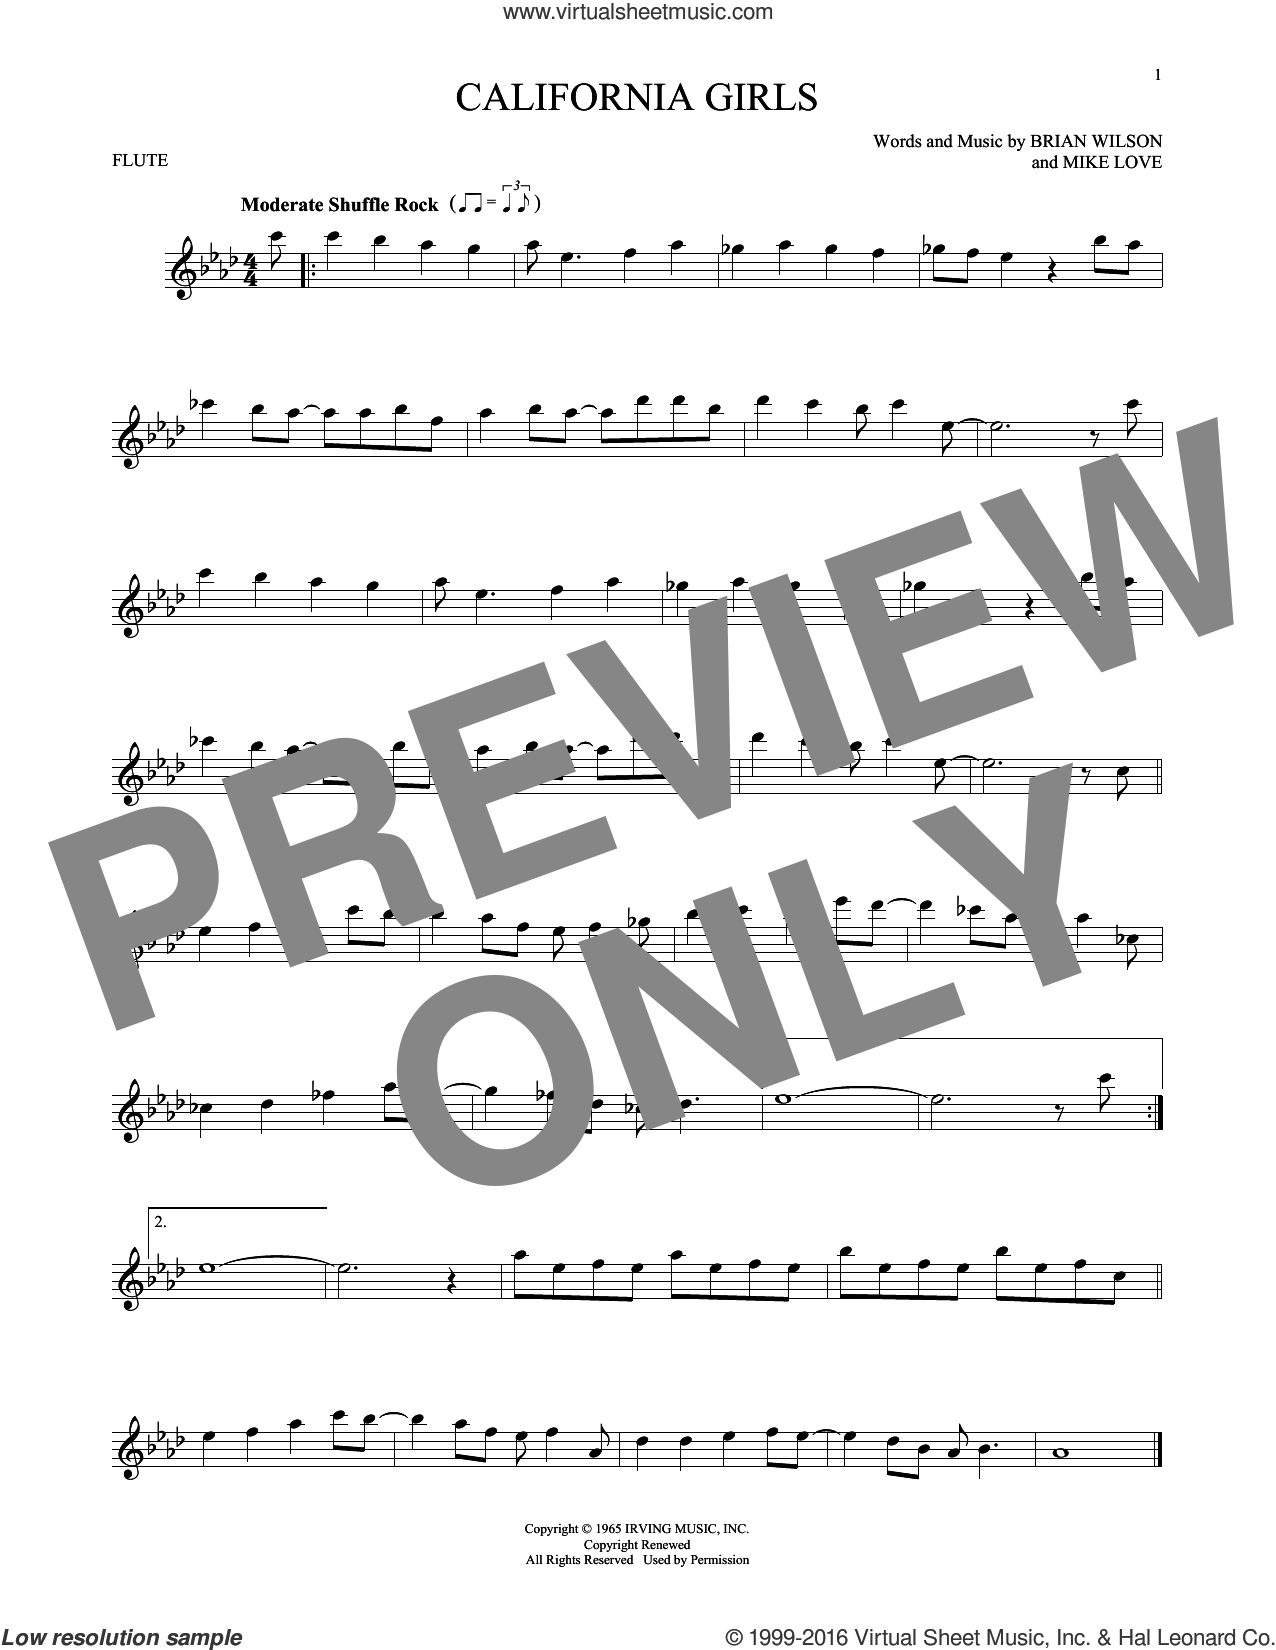 California Girls sheet music for flute solo by The Beach Boys, David Lee Roth, Brian Wilson and Mike Love, intermediate skill level